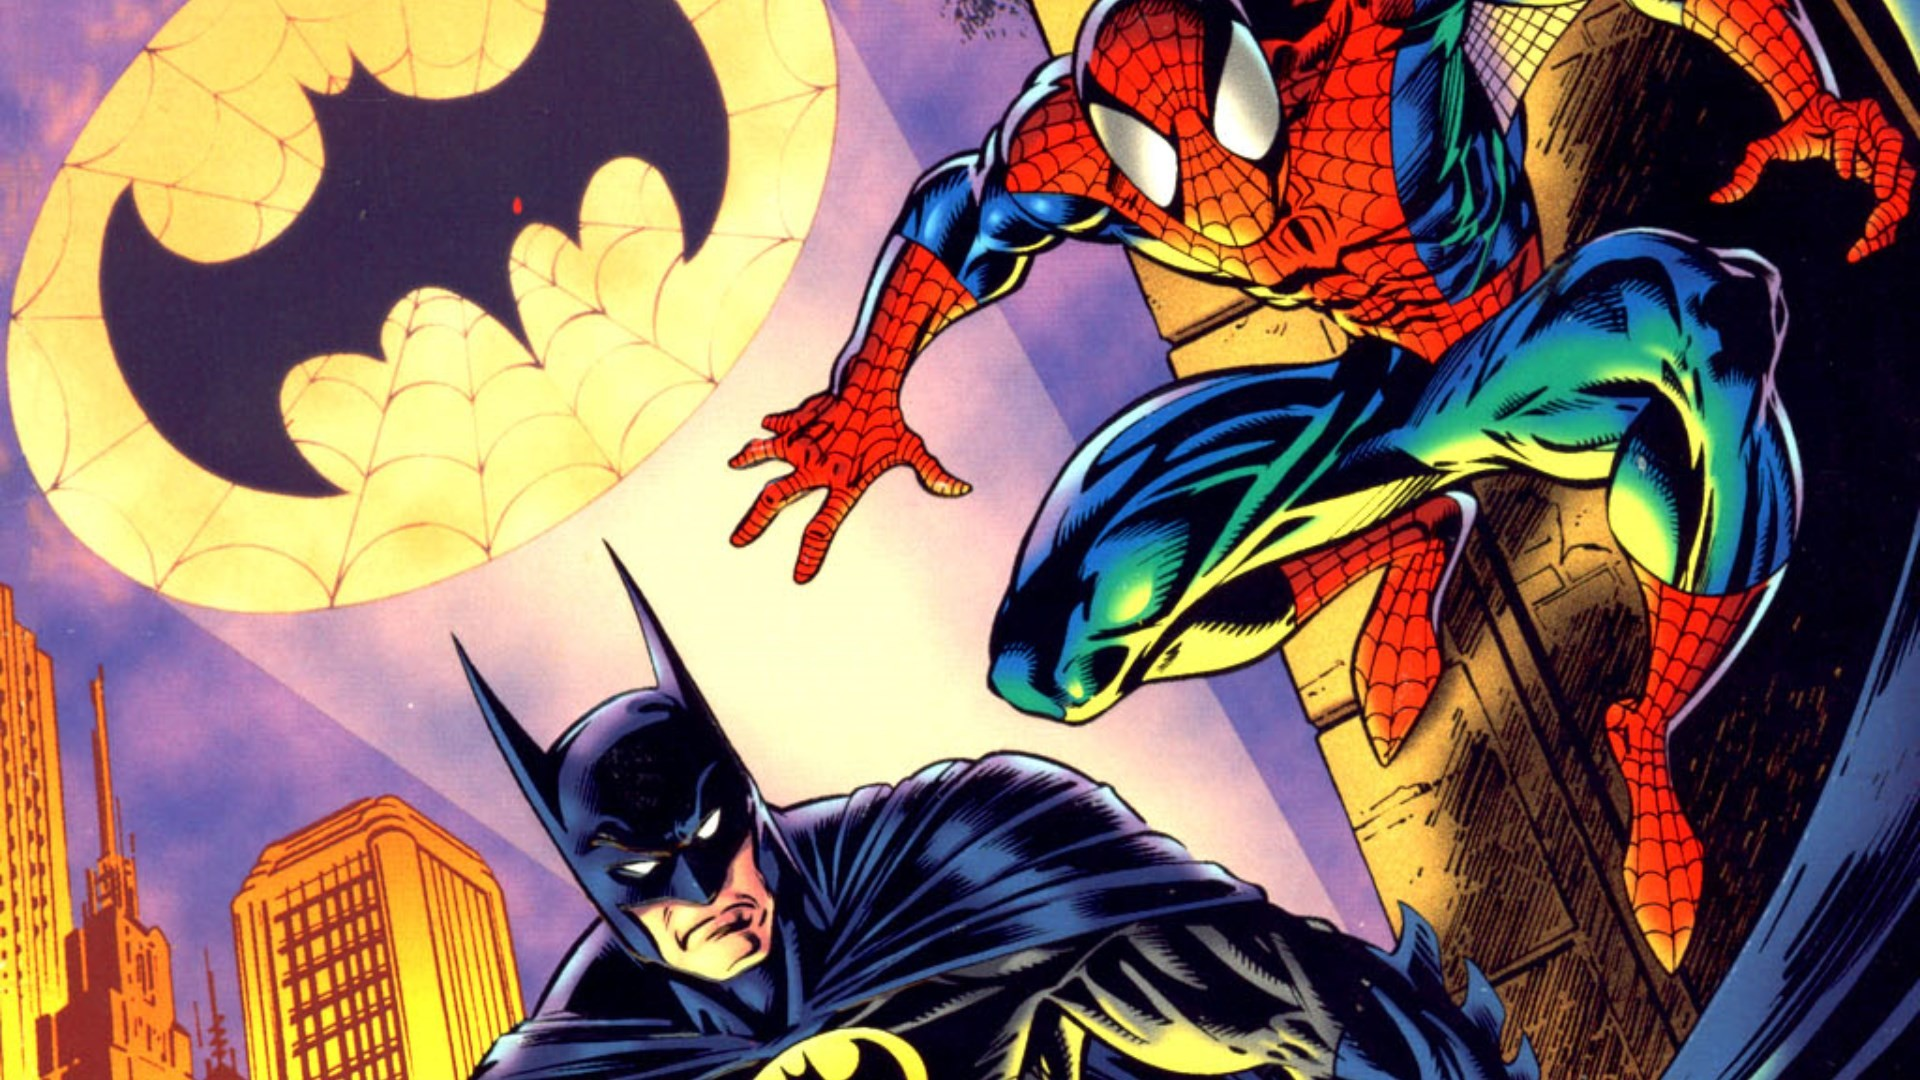 free screensaver wallpapers for spider man and batman